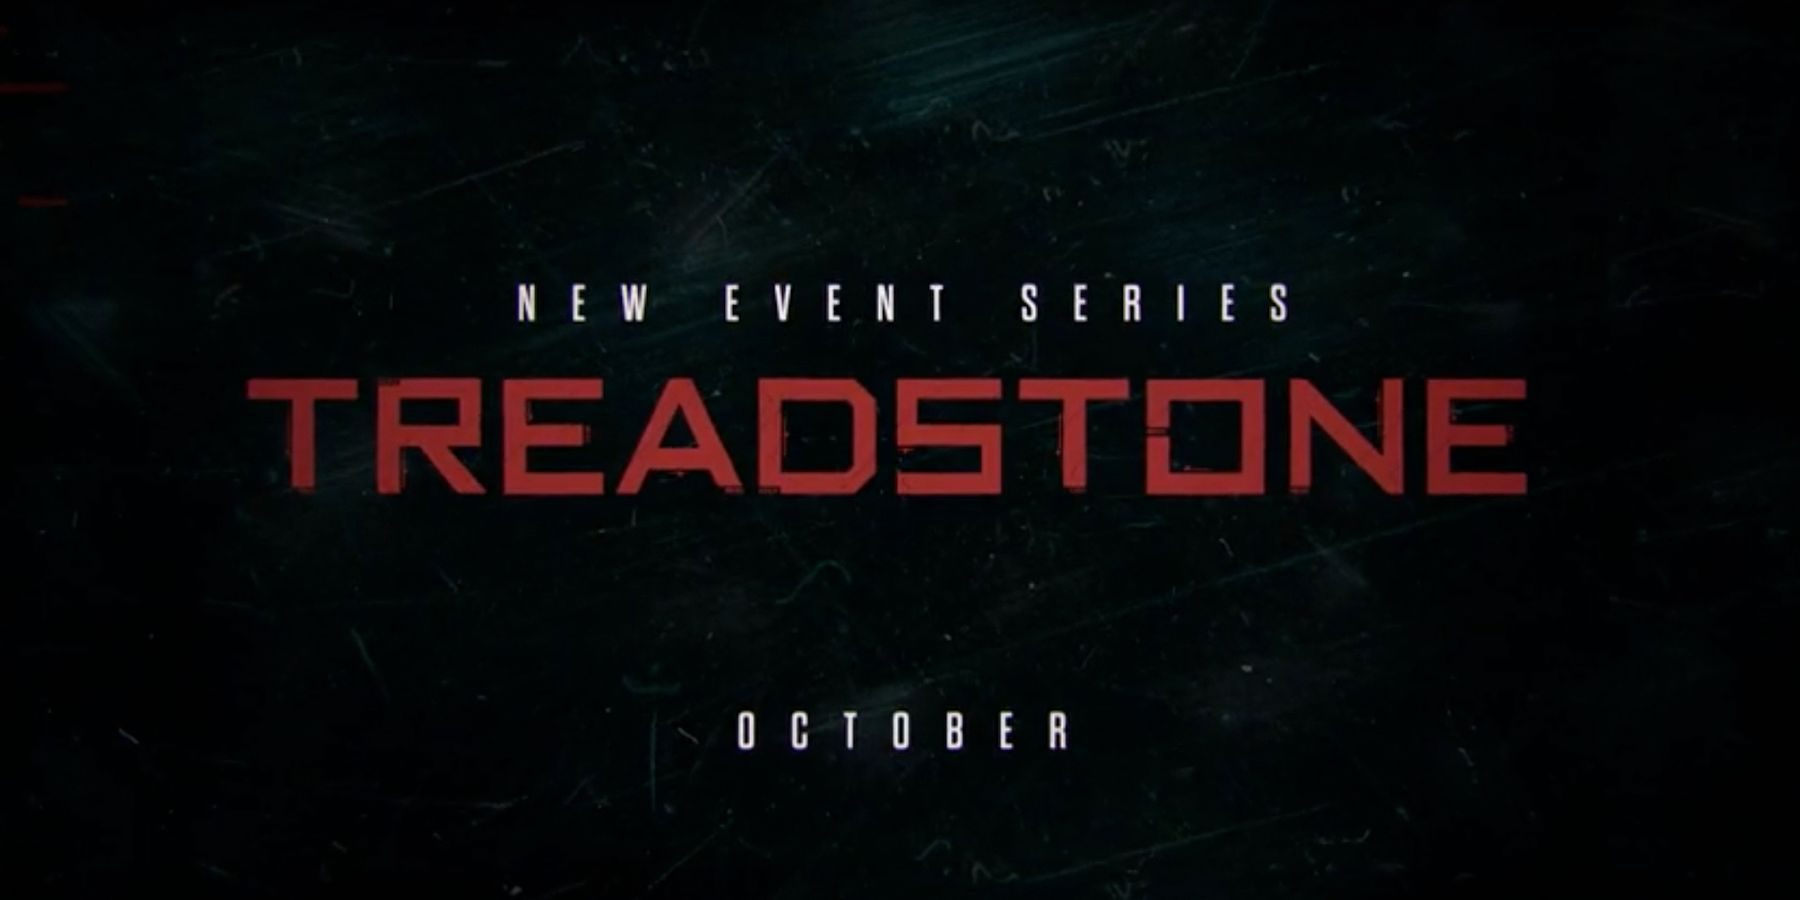 Jason Bourne Spinoff Treadstone's First Trailer Wakes More Sleeper Agents